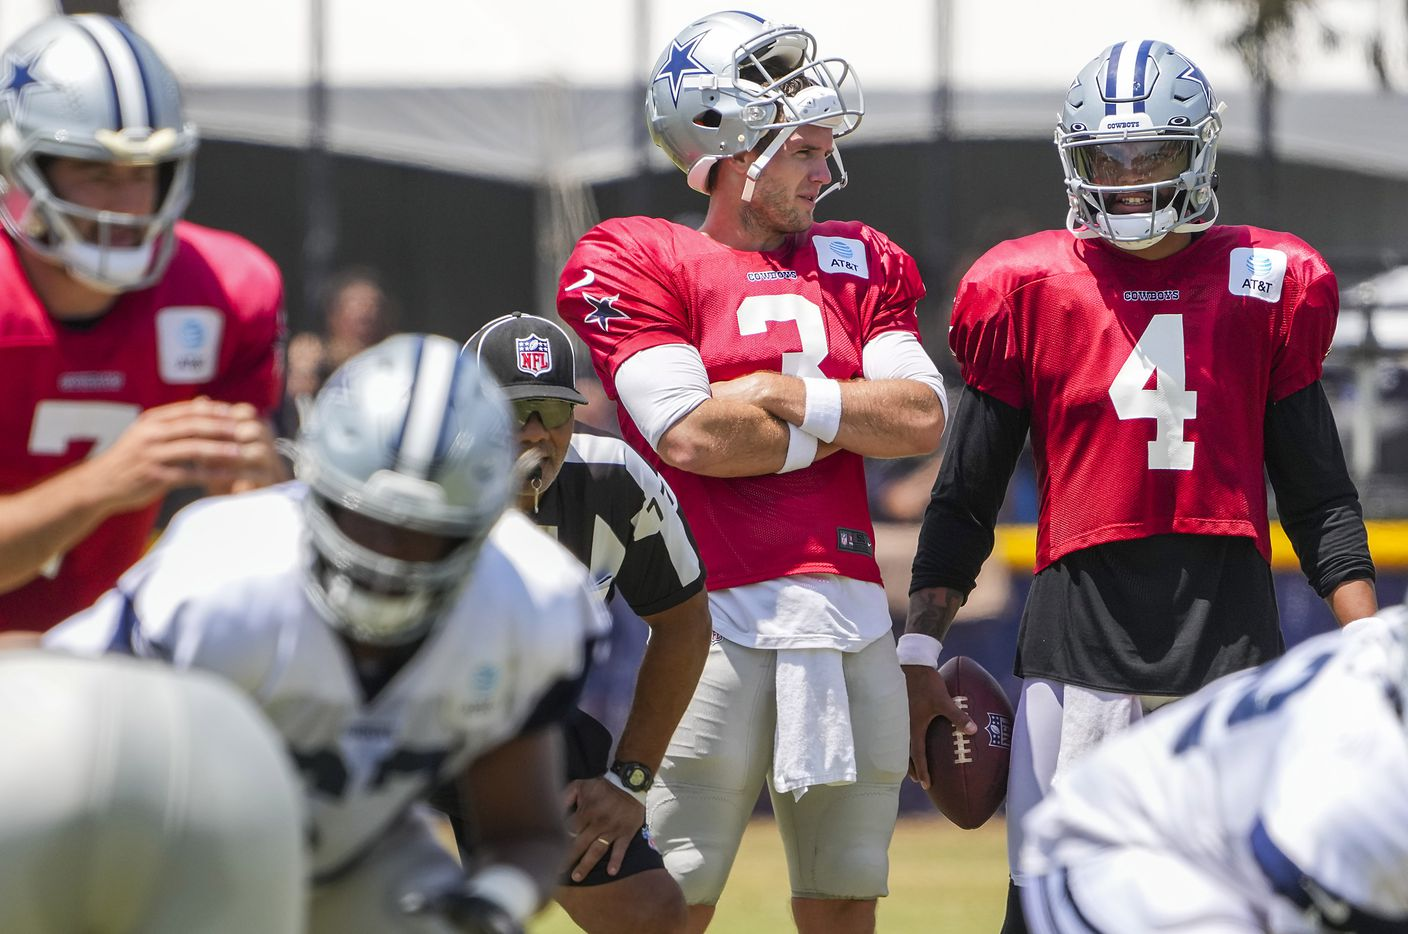 Dallas Cowboys quarterback Dak Prescott (4), who sat out of team drills, talks with quarterback Garrett Gilbert (3) as quarterback Ben DiNucci (7) takes a snap during a practice at training camp on Wednesday, July 28, 2021, in Oxnard, Calif.